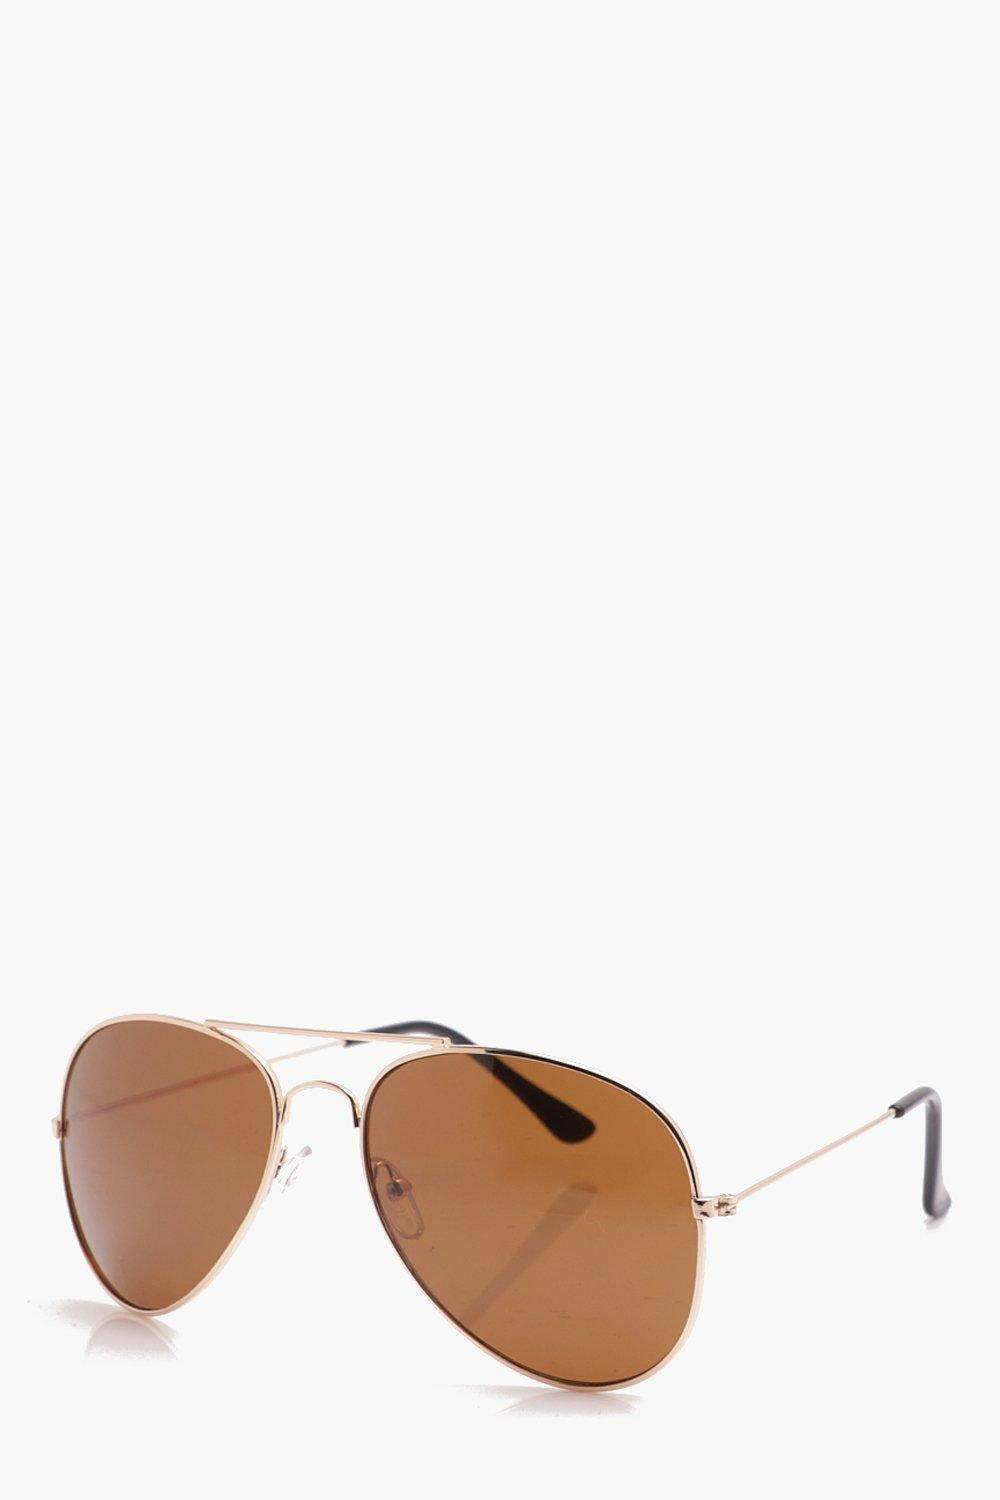 boohooMAN gold Classic Aviator Sunglasses With Brown Lens